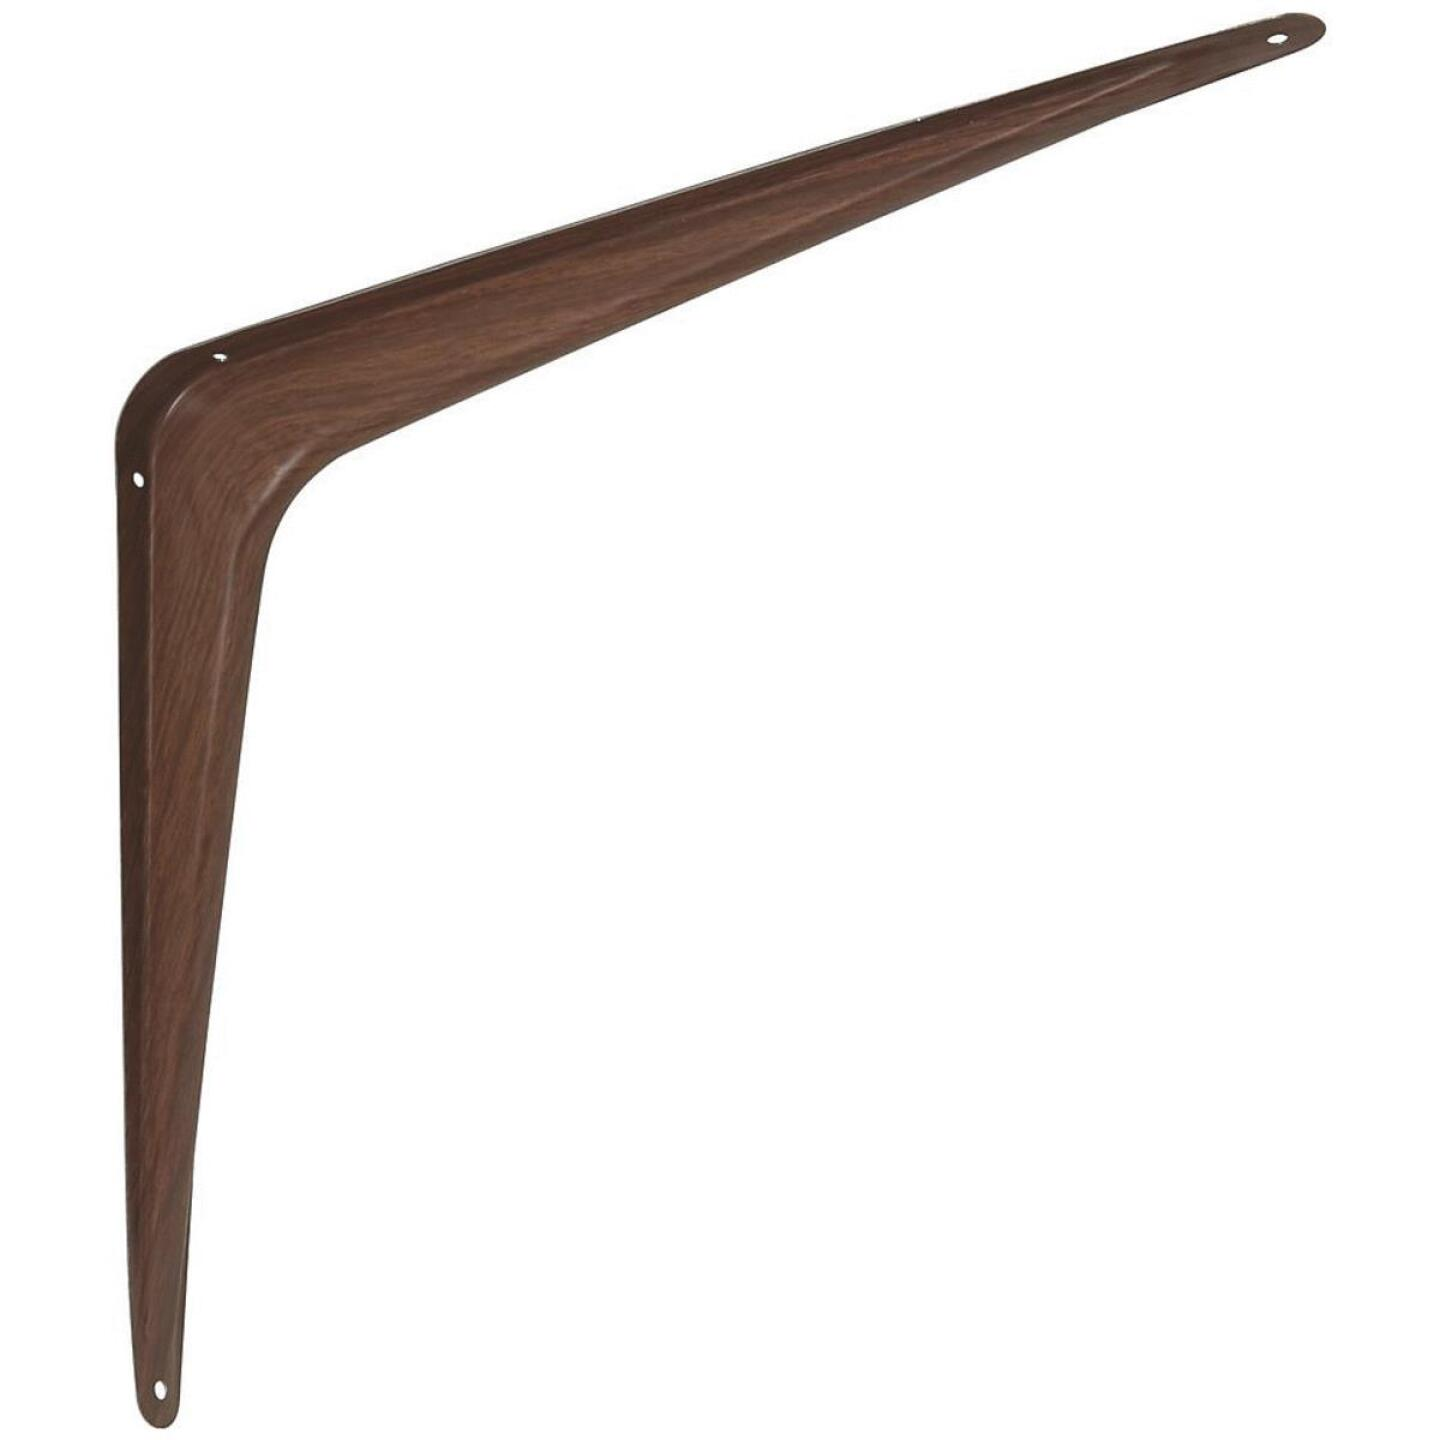 National 211 12 In. D. x 14 In. H. Fruitwood Steel Shelf Bracket Image 1